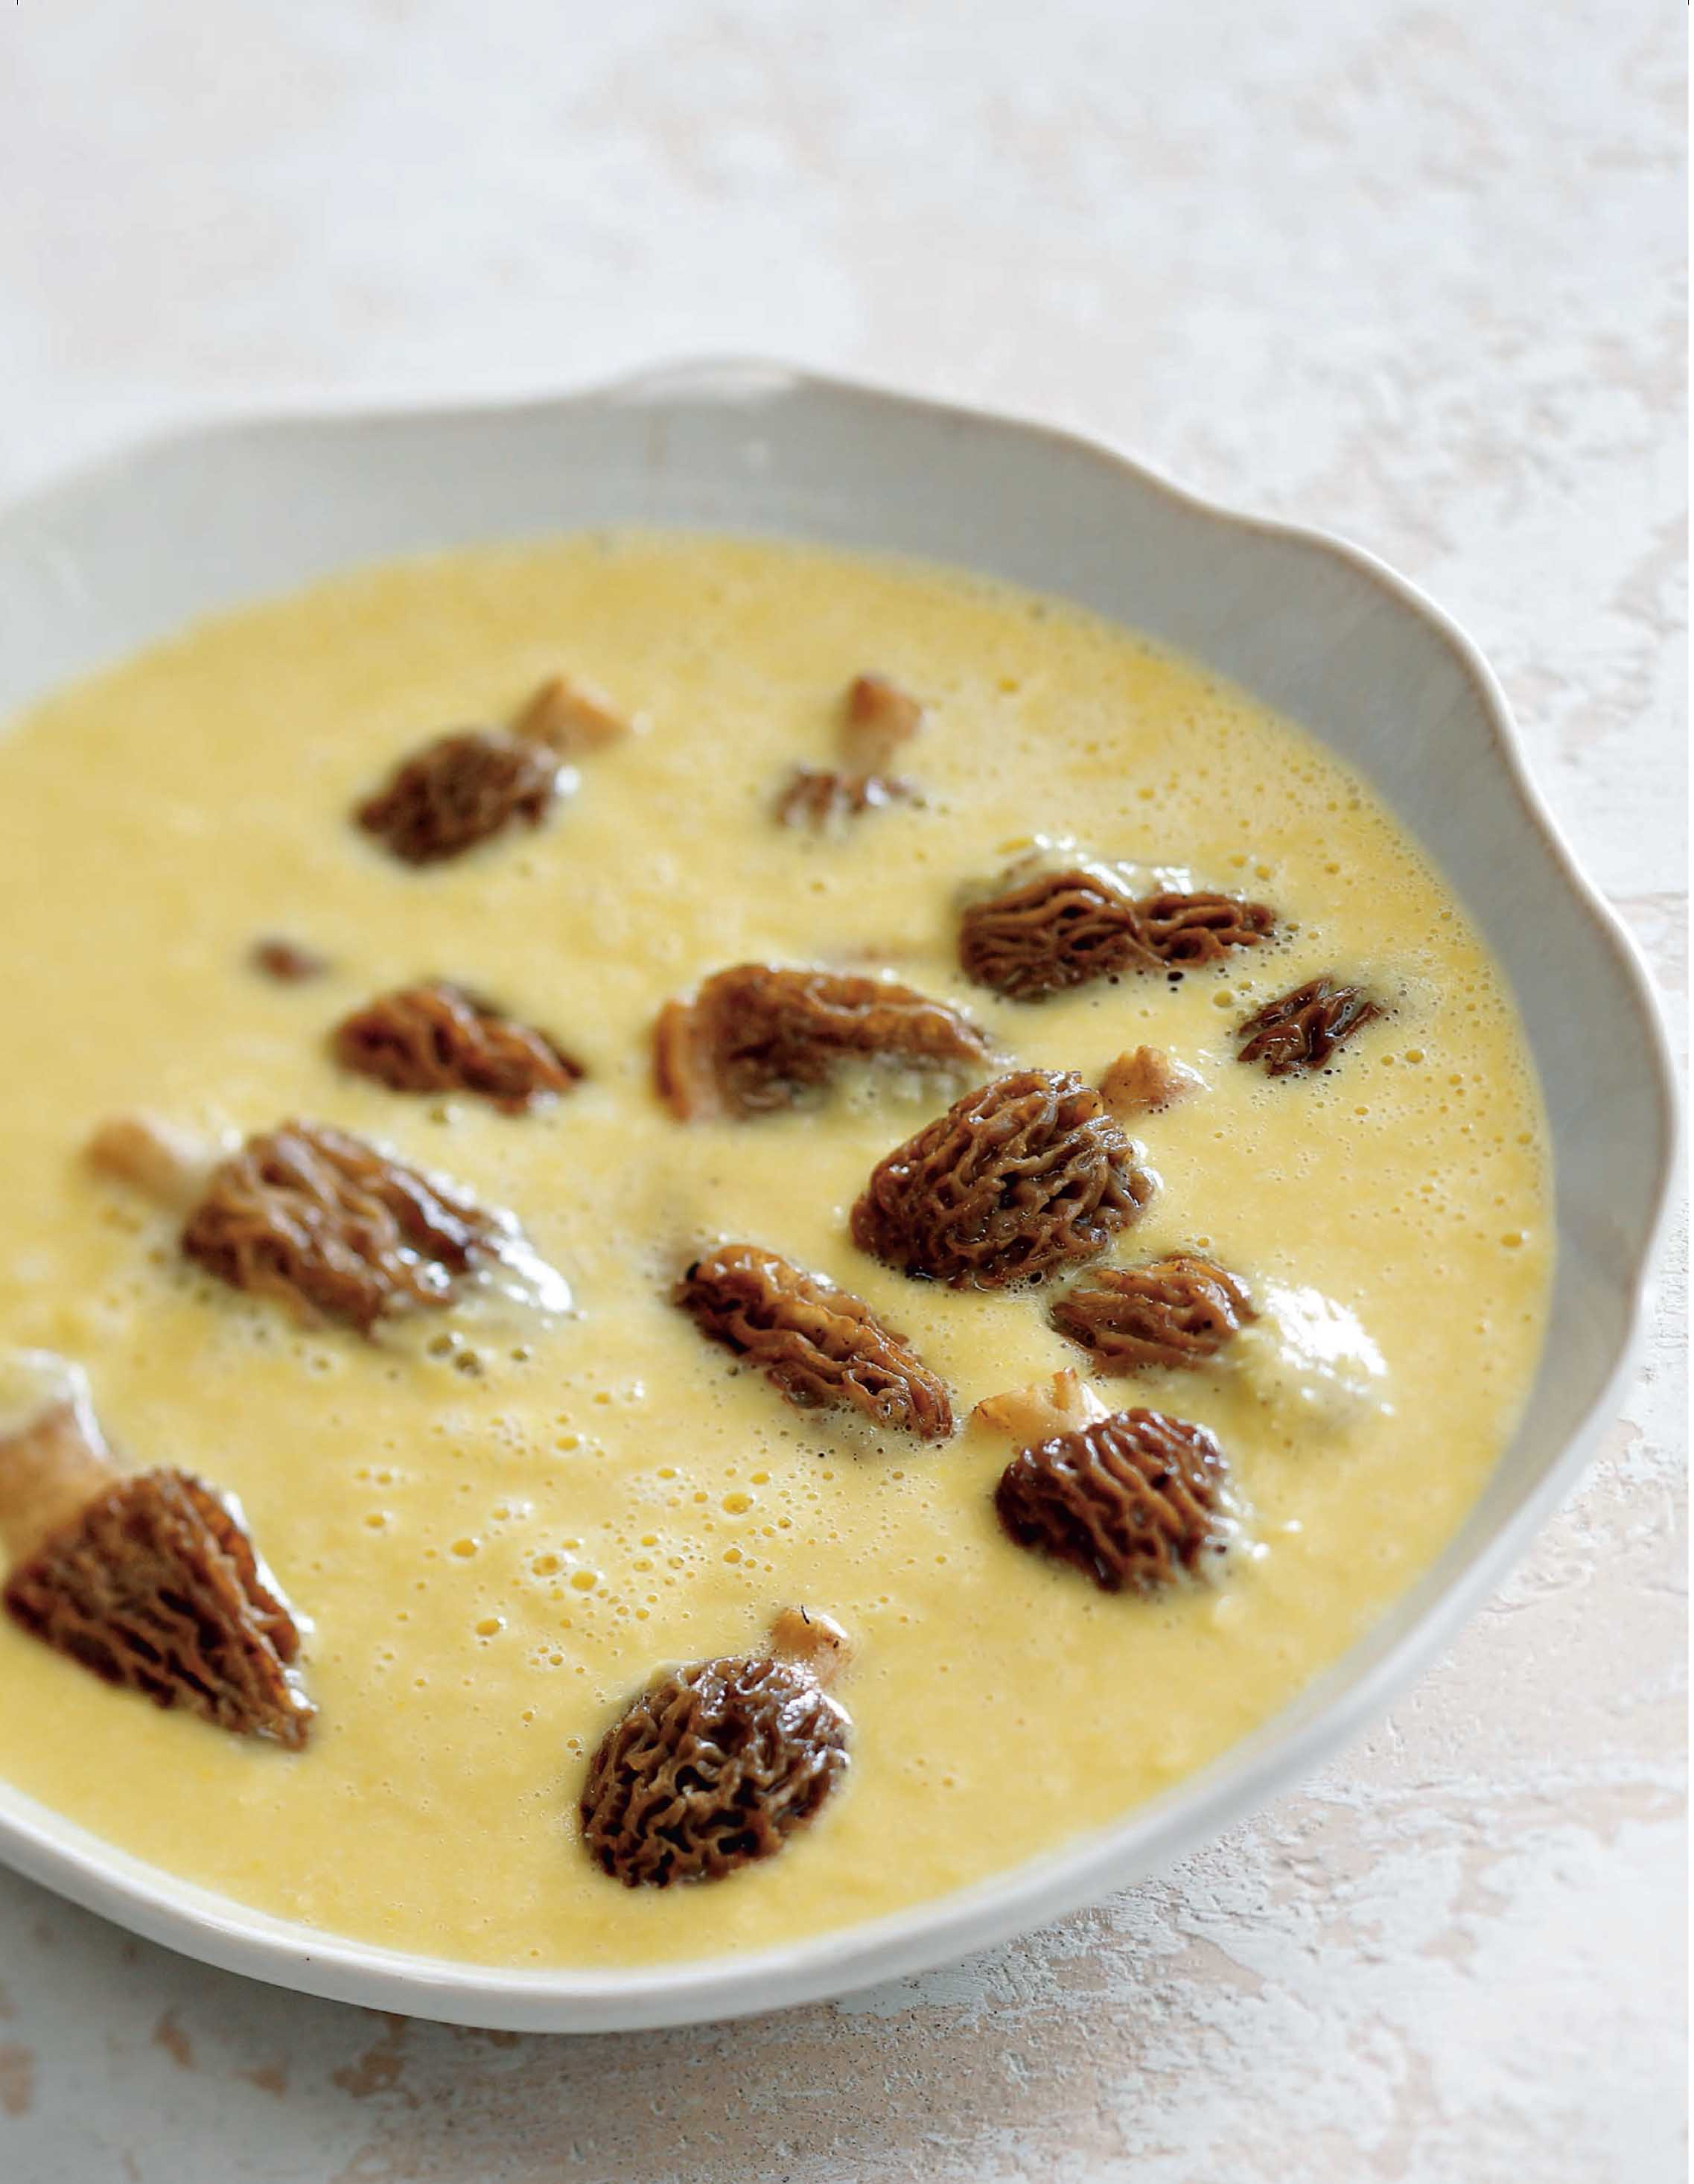 Cappuccino of corn chowder with morels